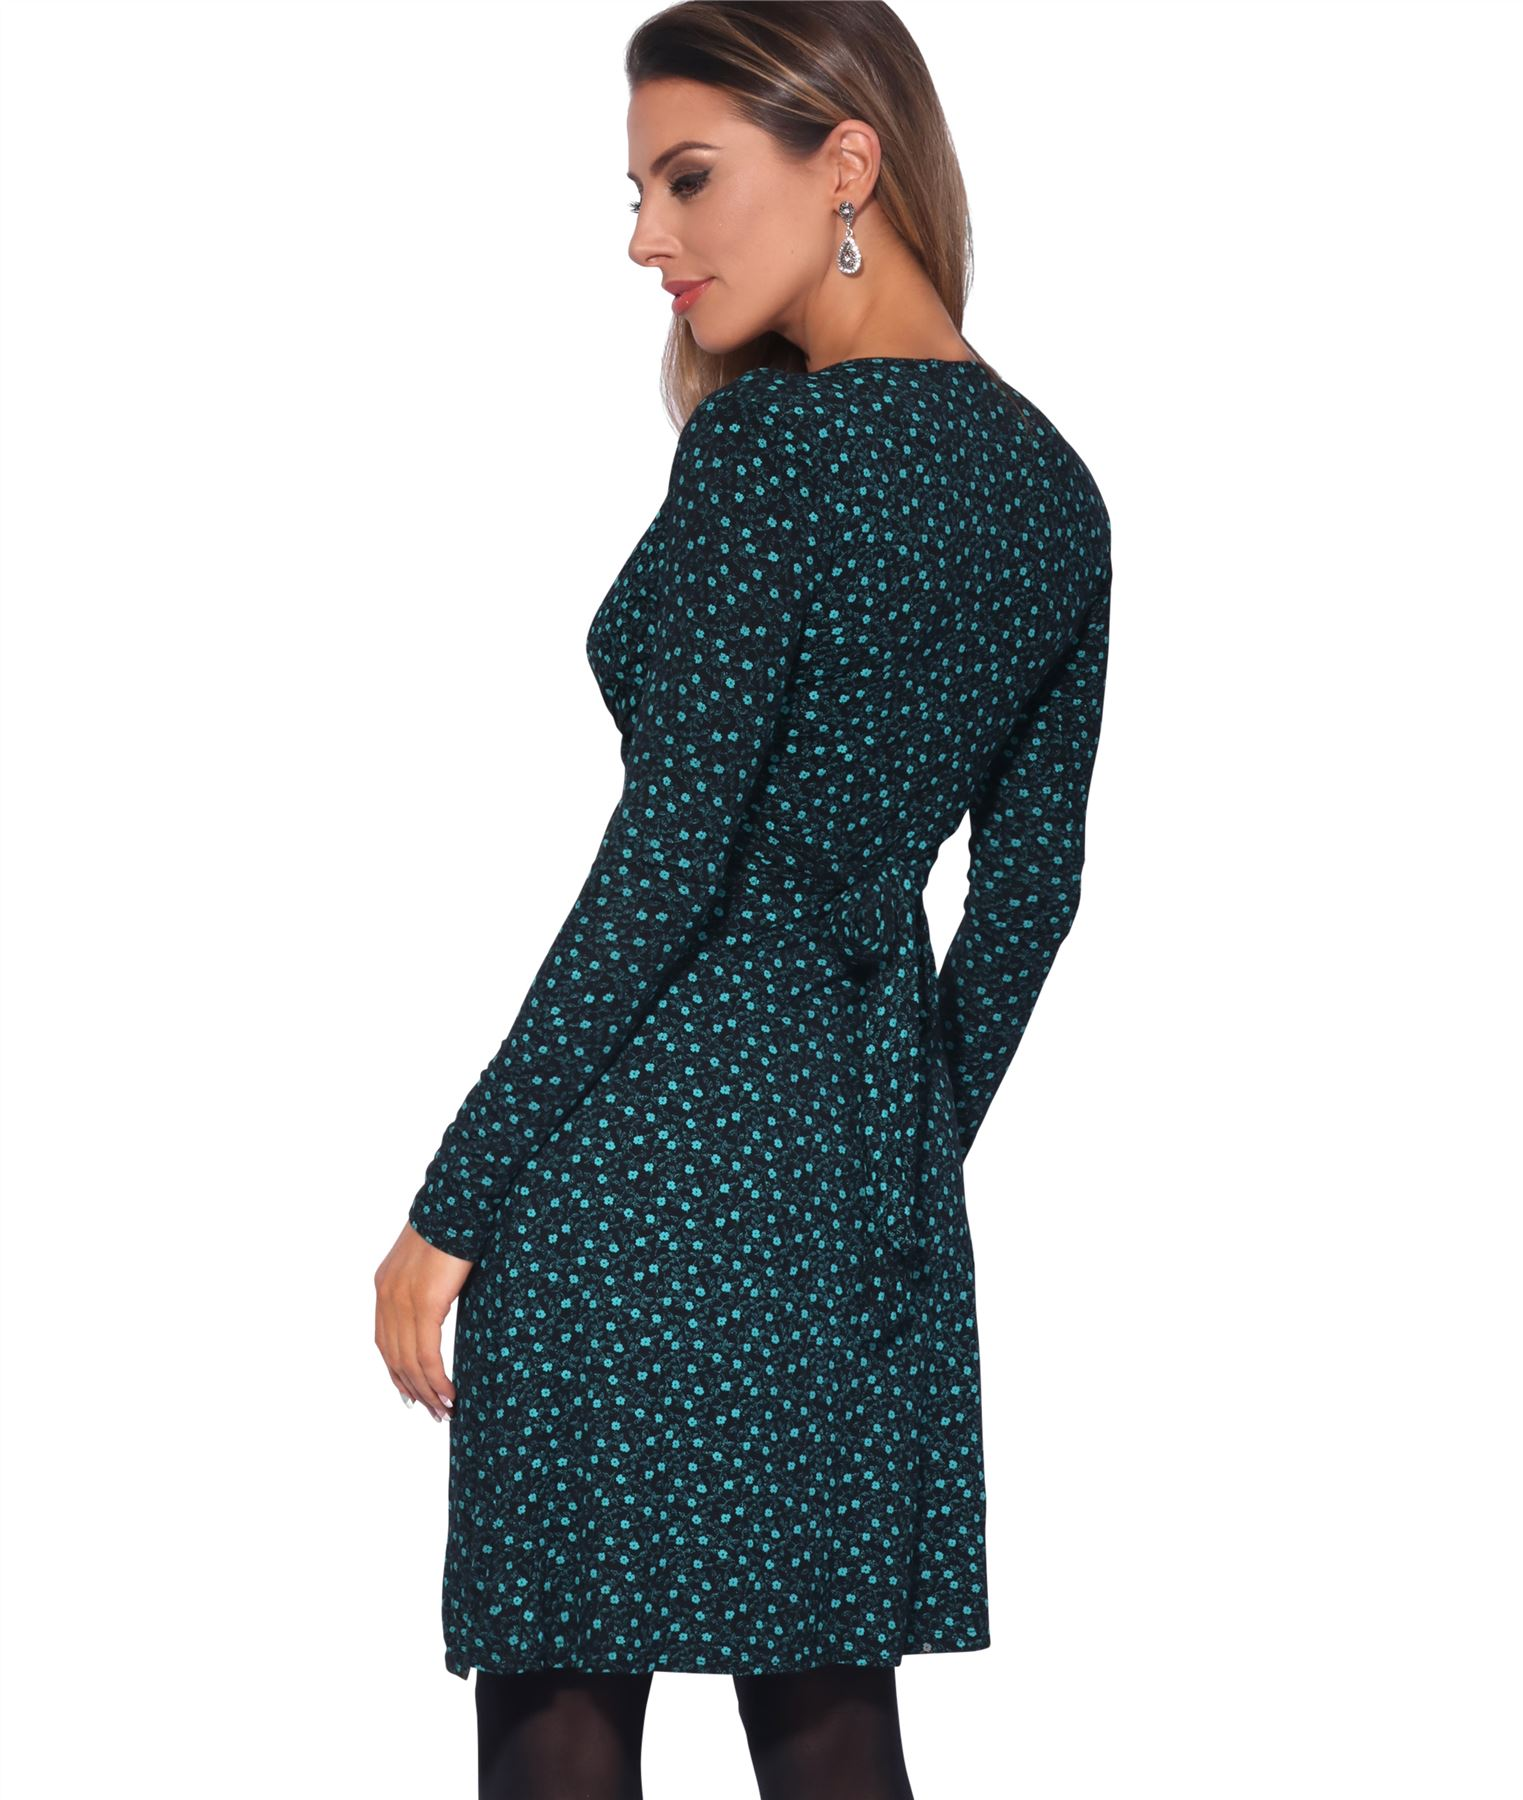 Womens-Ladies-Pattern-Dress-Drape-Print-Stretch-Long-Sleeve-Ruched-Knot-Party thumbnail 13